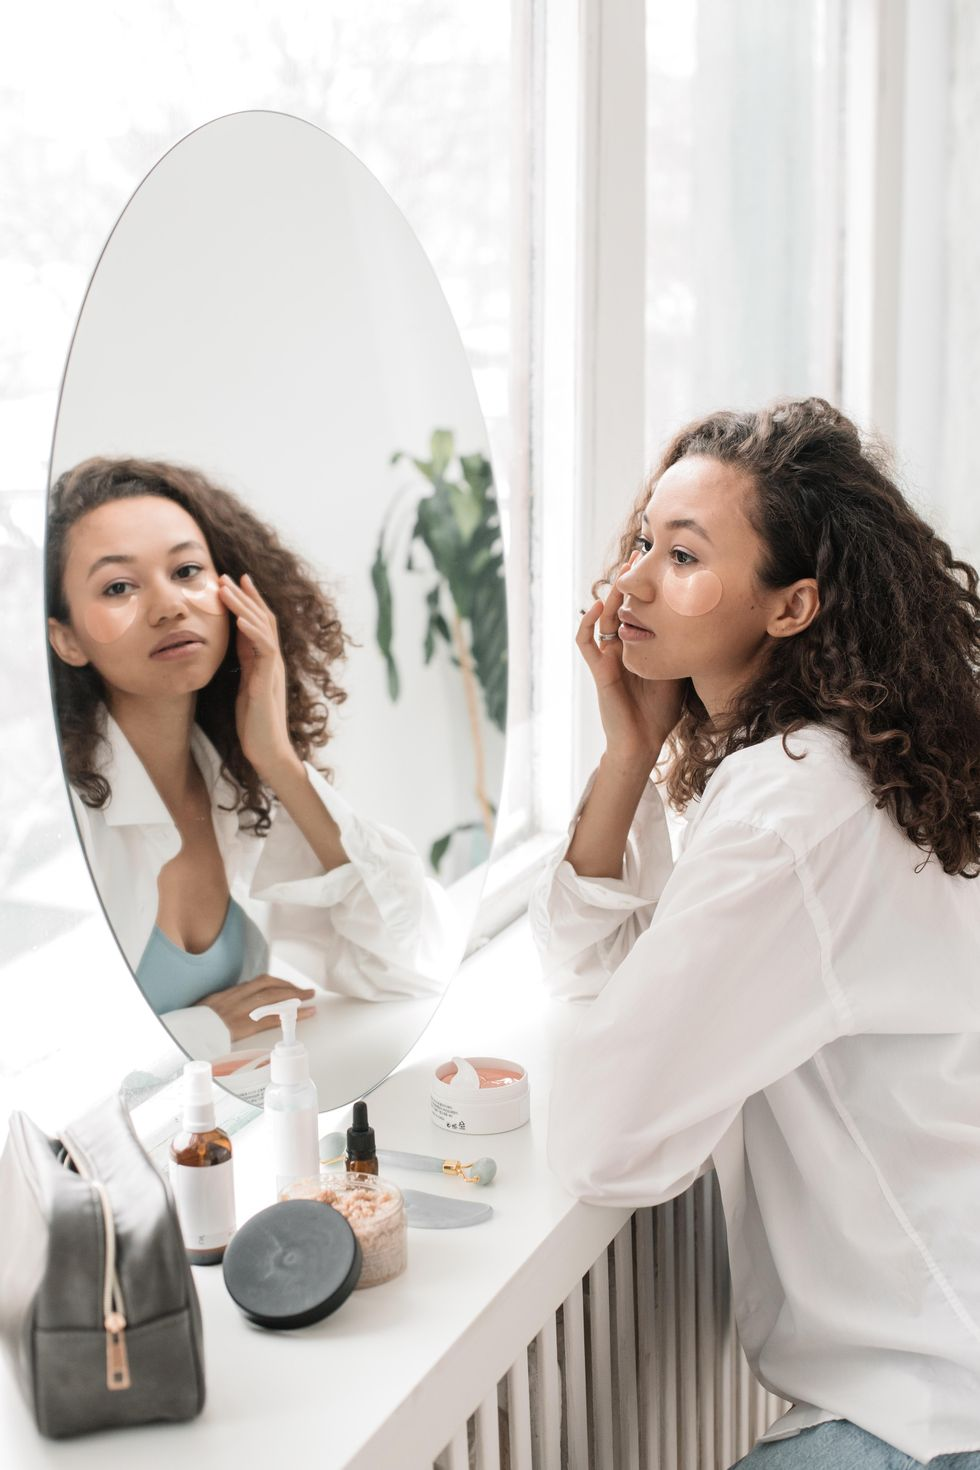 I Started A Daily Skin Care Routine, And It Has Brightened My Skin AND My Mood